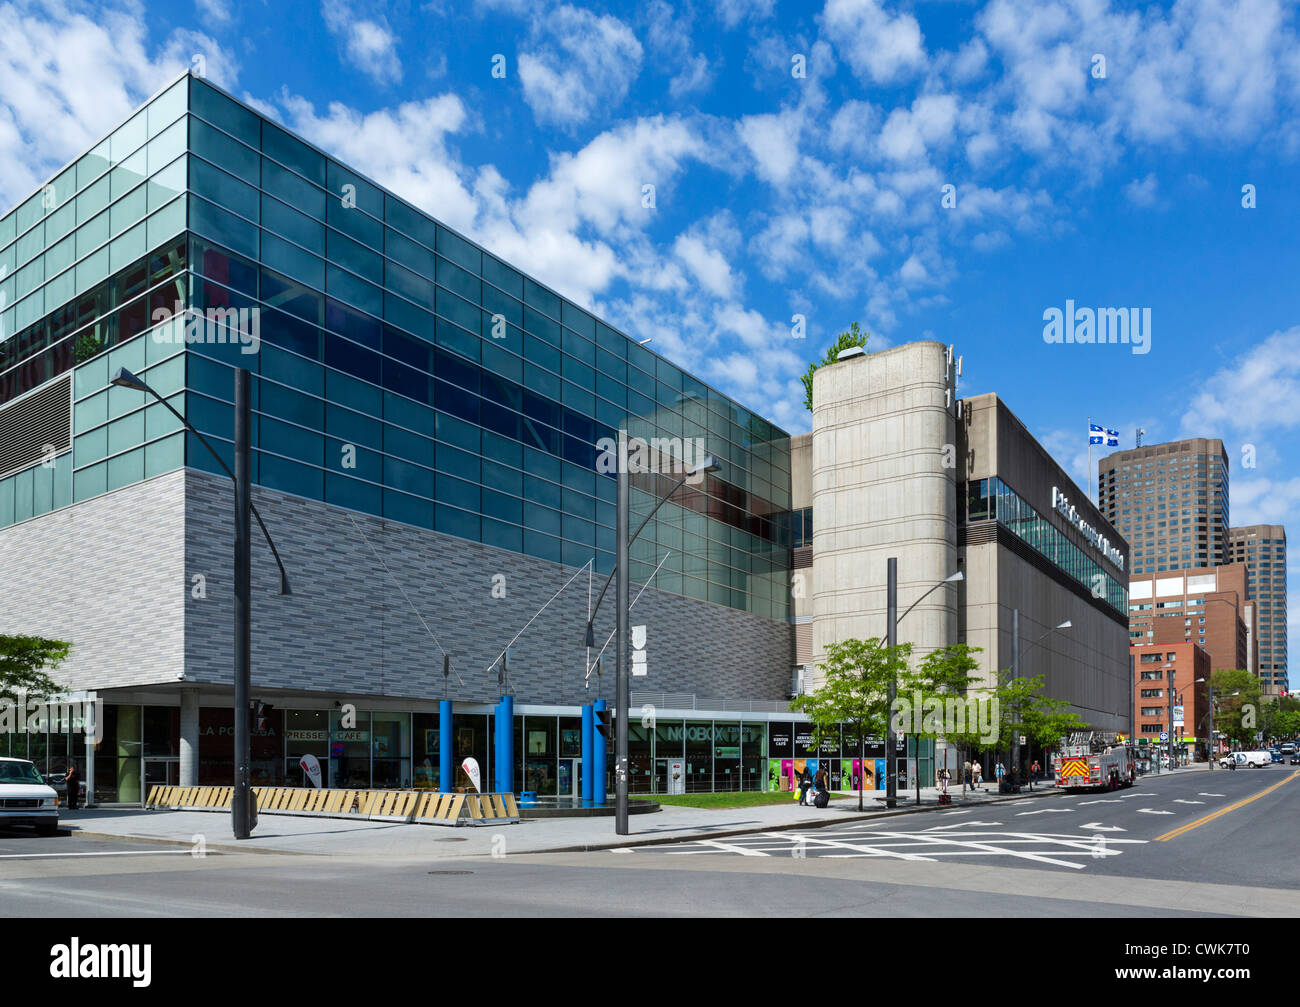 The Palais des Congres de Montreal convention centre, Quartier International, Montreal, Quebec, Canada Stock Photo